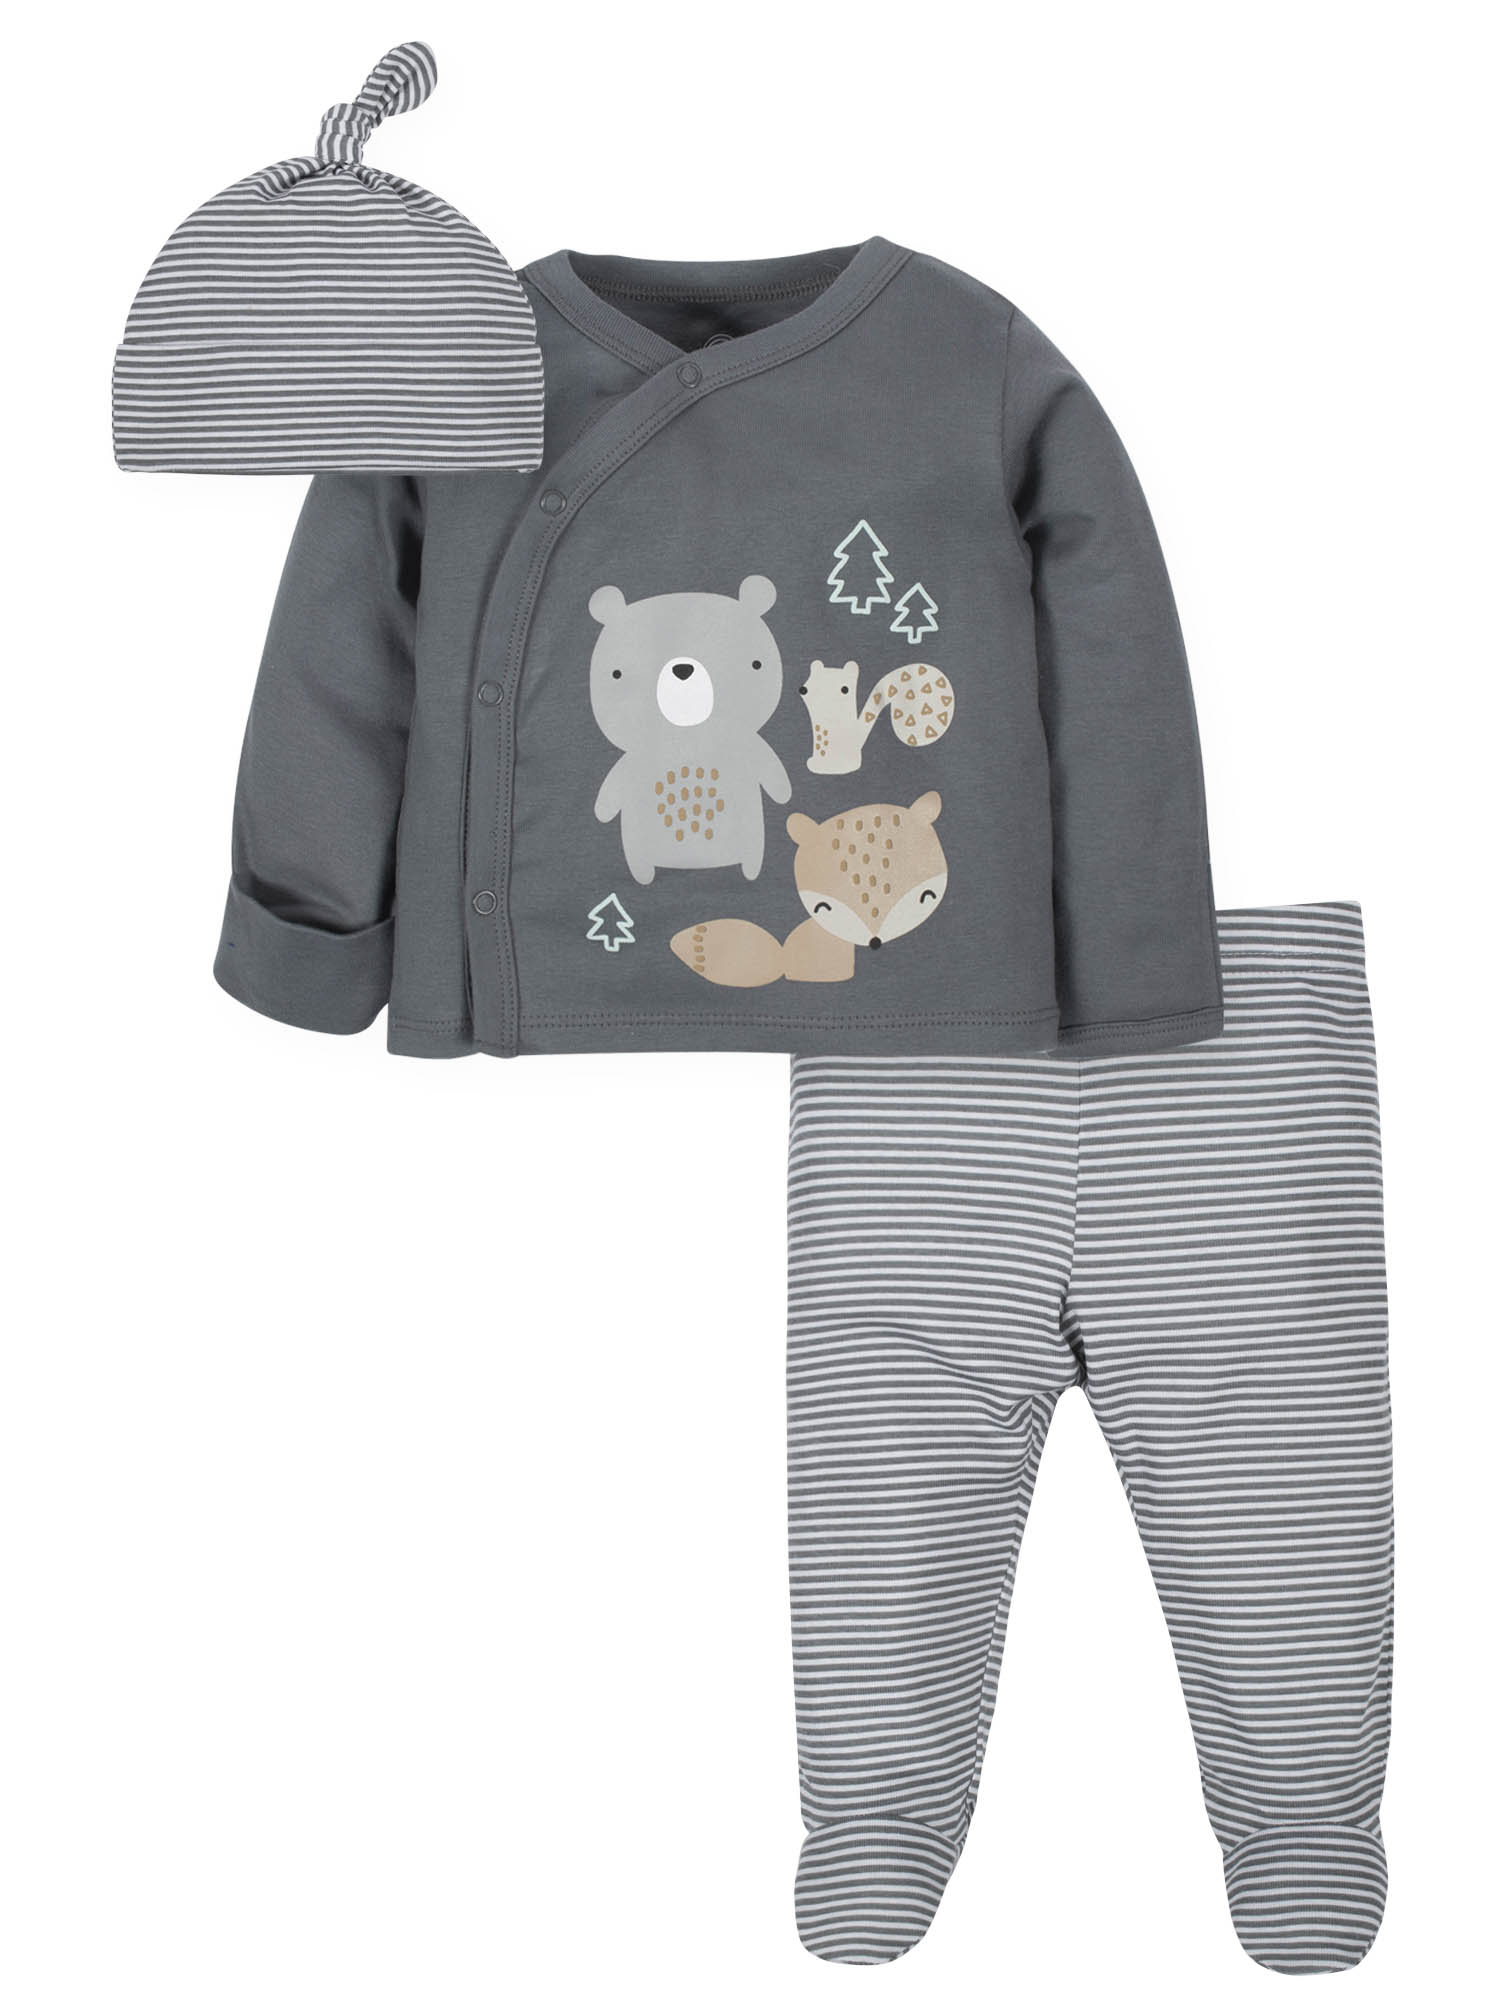 Wonder Nation Baby Boy Outfit Take Me Home Shirt, Cap & Footed Pants, 3-Piece (Walmart)